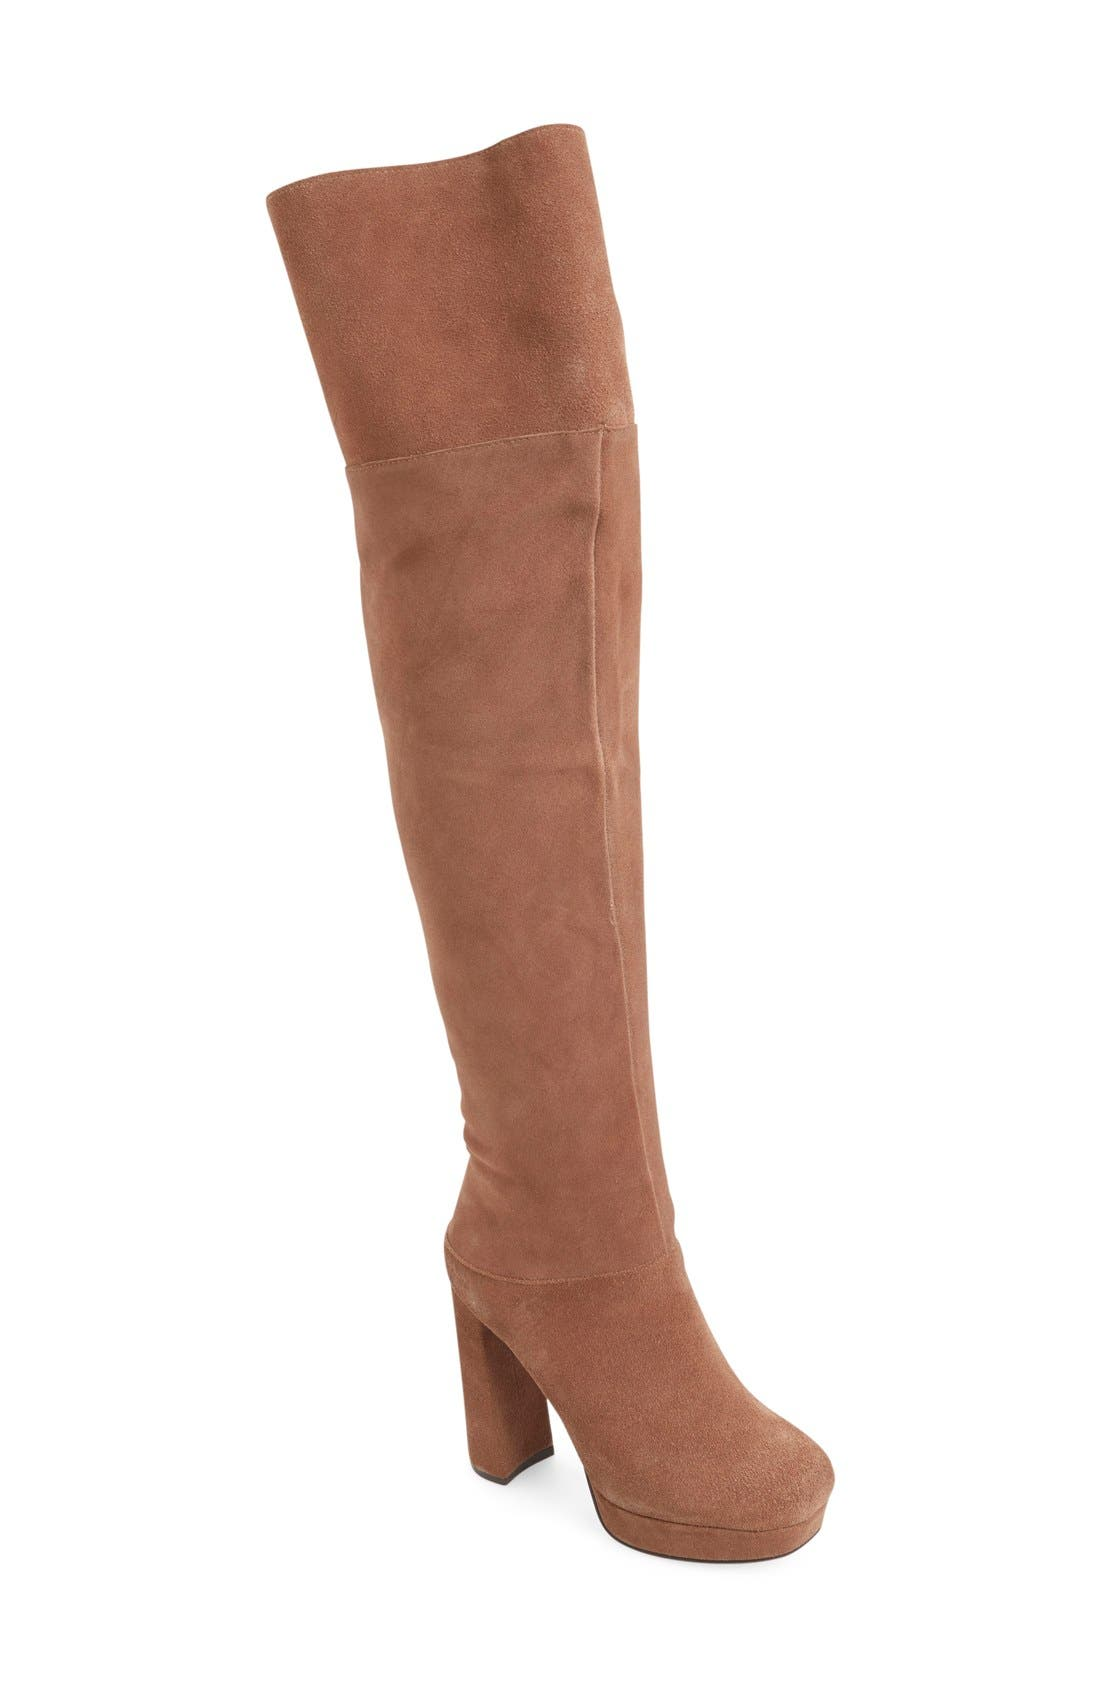 Alternate Image 1 Selected - Jeffrey Campbell 'Destino' Over the Knee Platform Boot (Women)